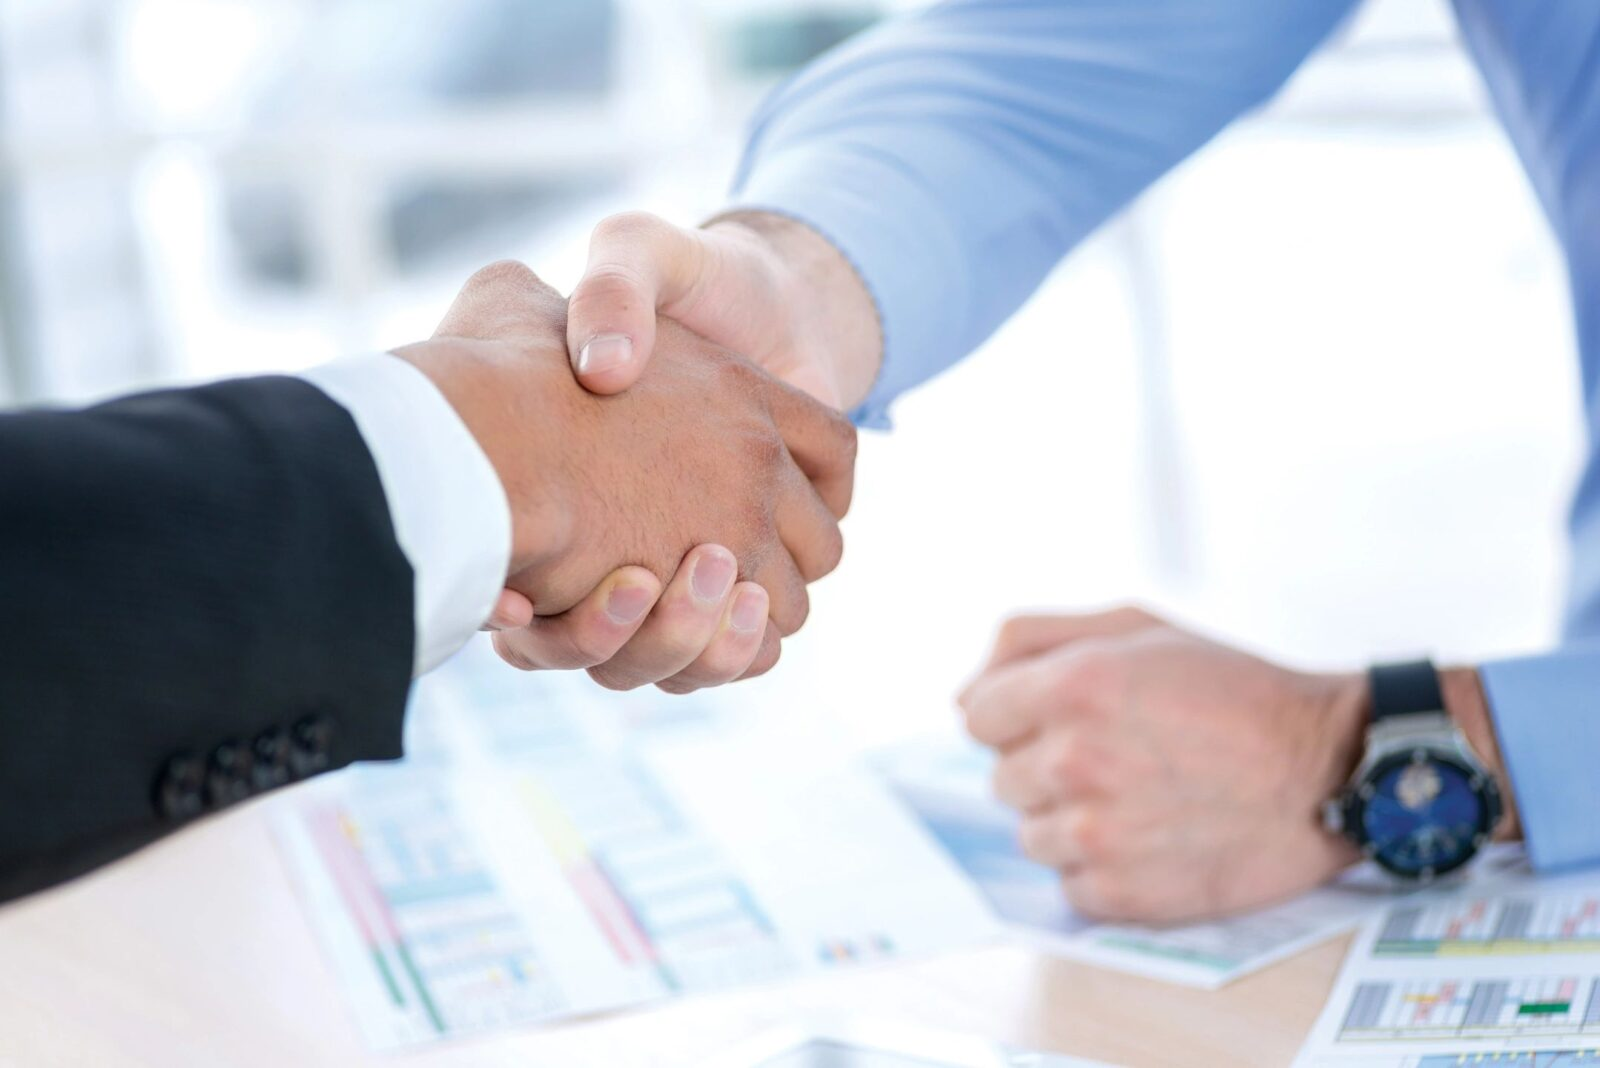 loan officer getting realtor business hand shake